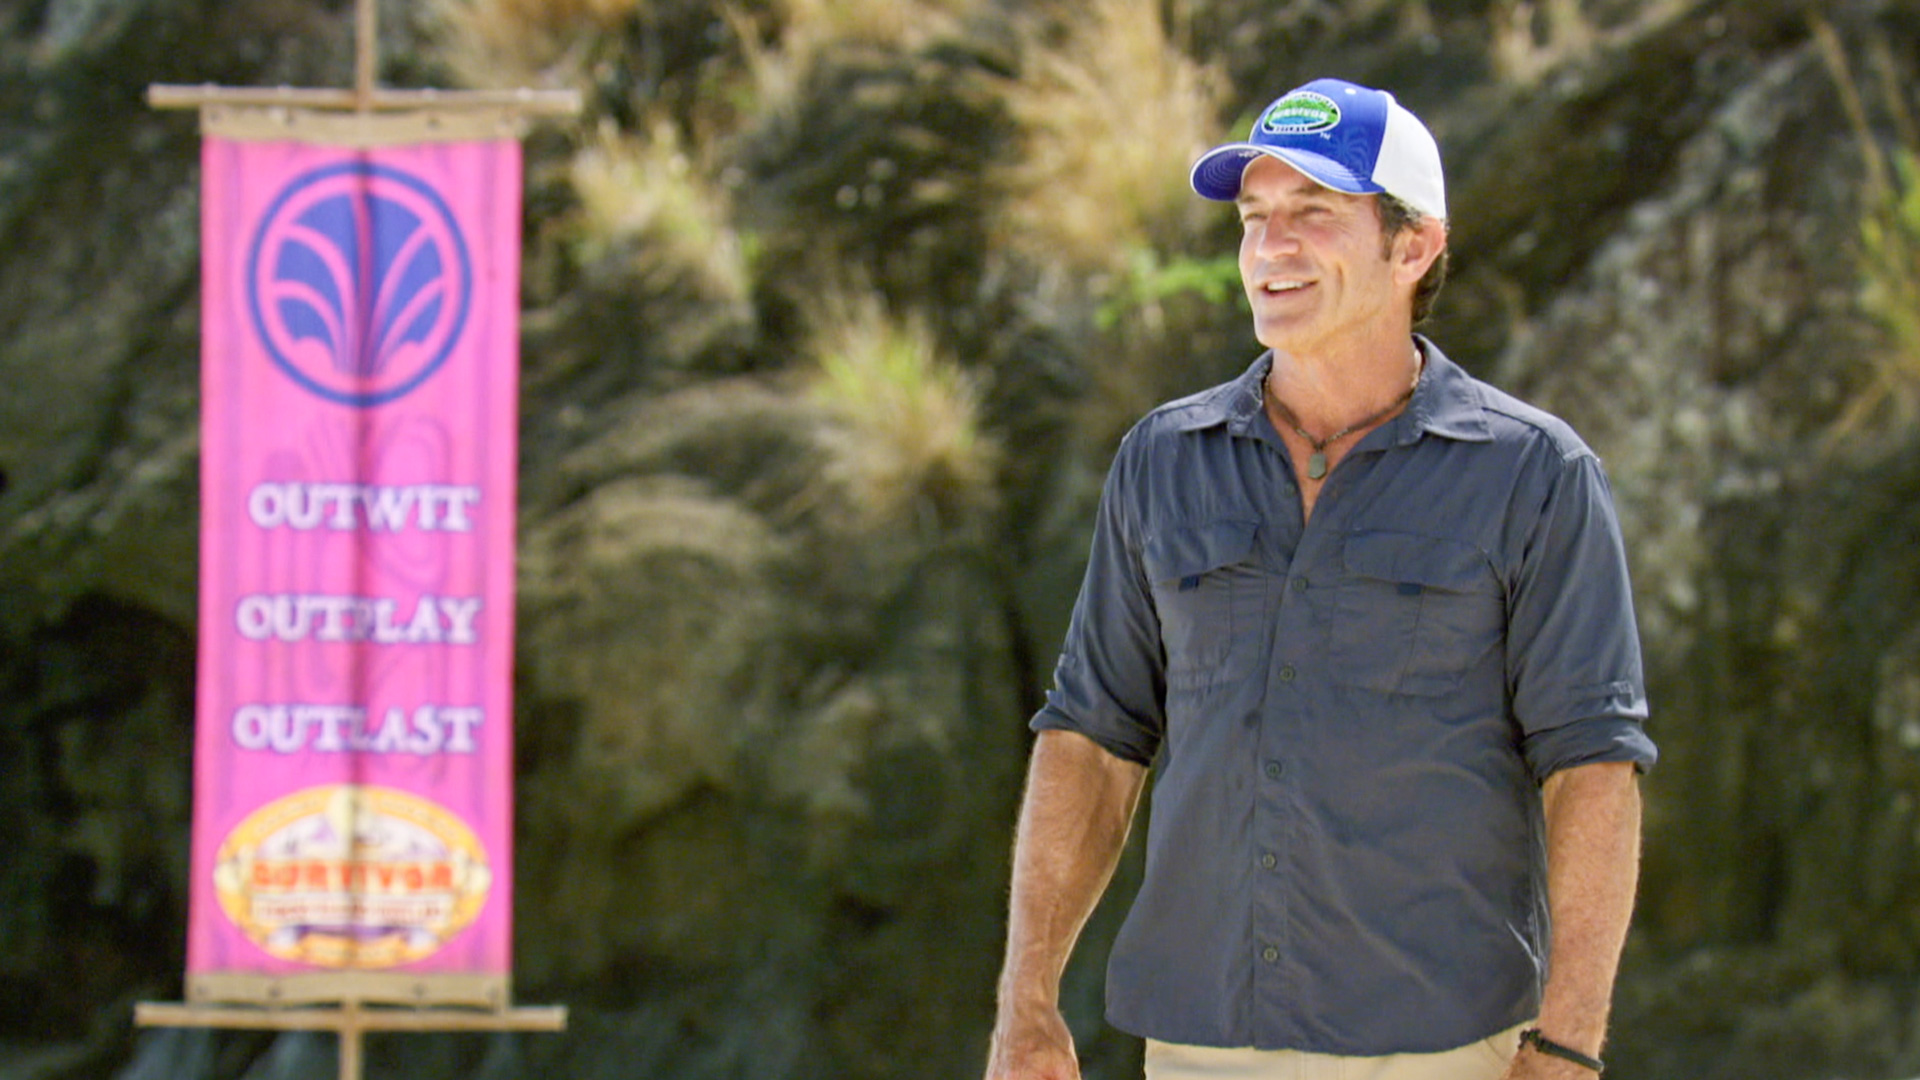 Survivor host Jeff Probst has so many inspiring things to say each season.